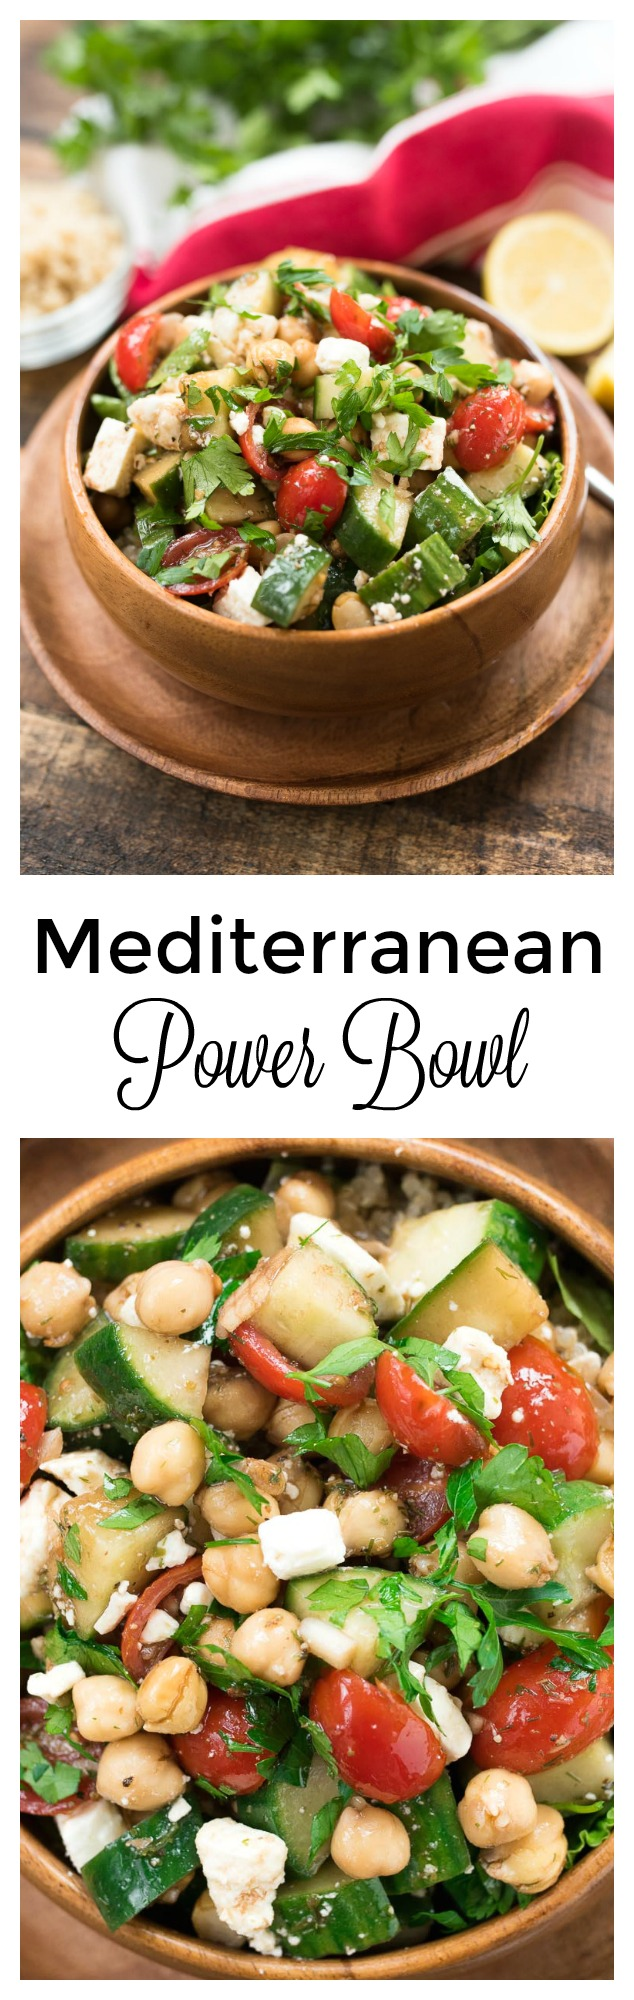 Mediterranean power bowl gluten free nutritious eats mediterranean power bowl a plant based protein and fiber packed lunch or dinner forumfinder